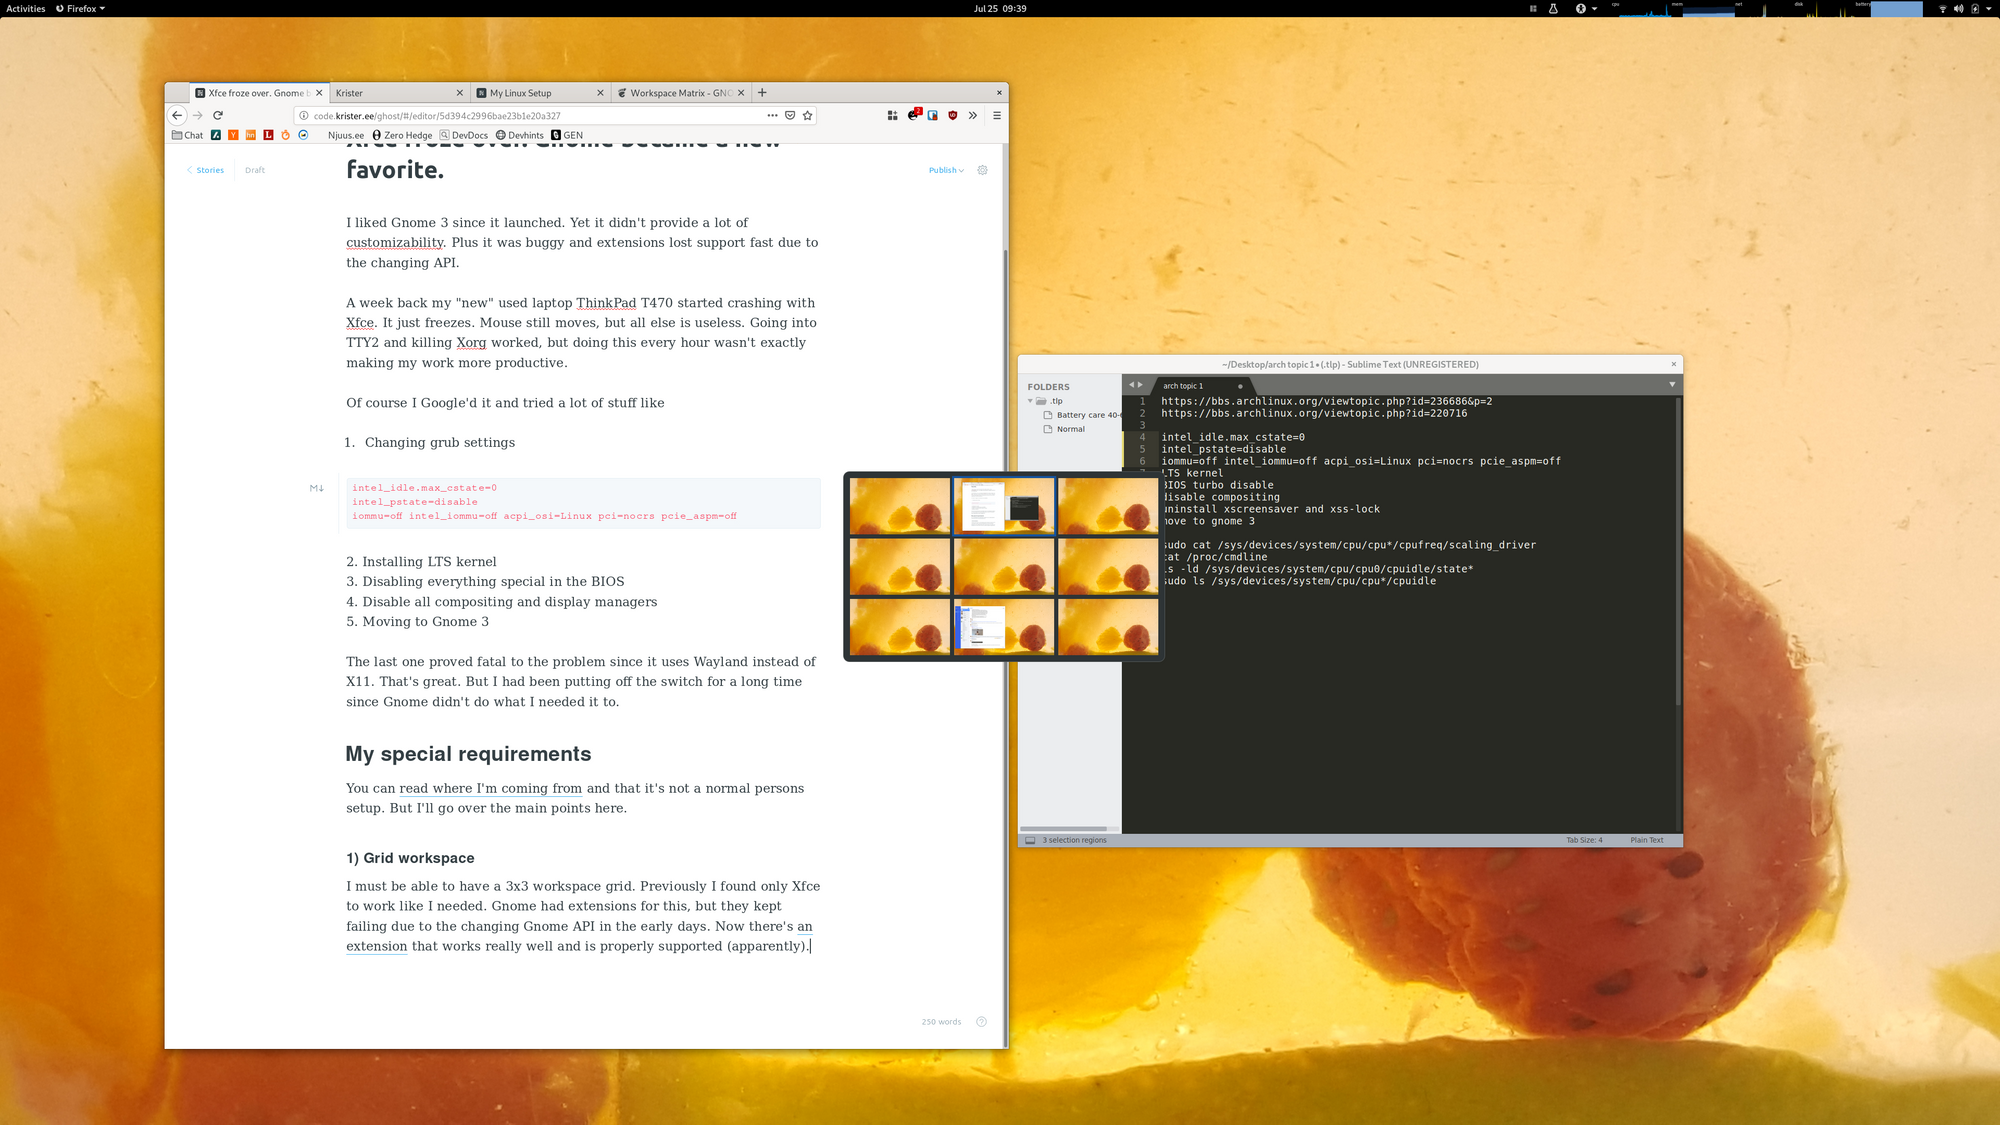 Xfce froze over  Gnome became a new favorite